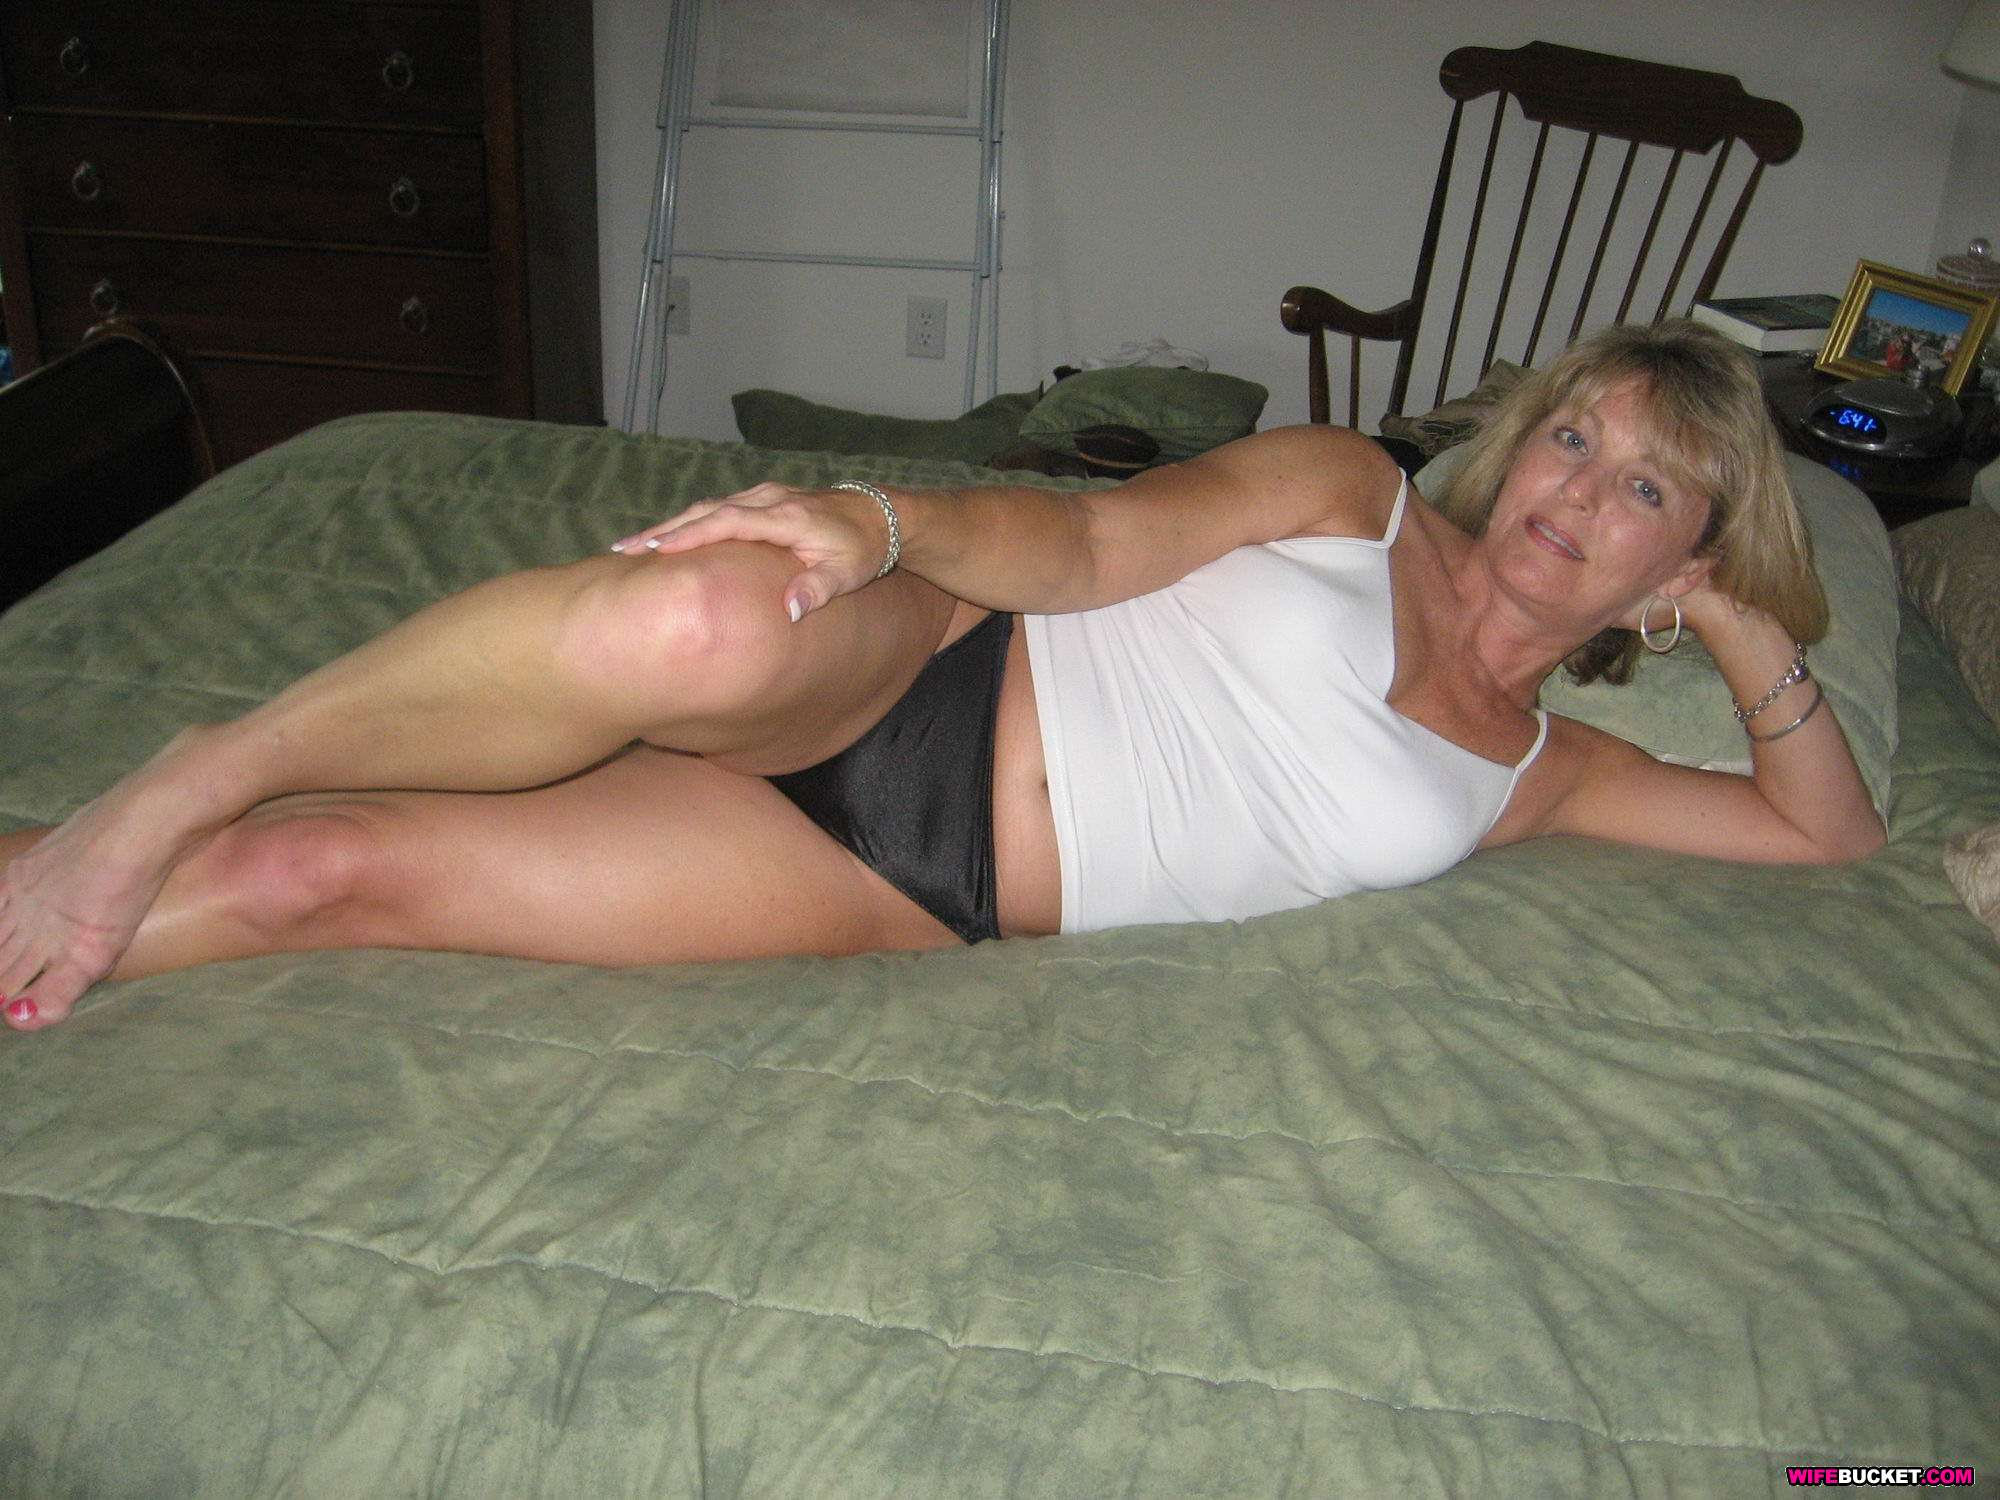 Another cheating slut wife from tampa 3rd person view - 2 part 9